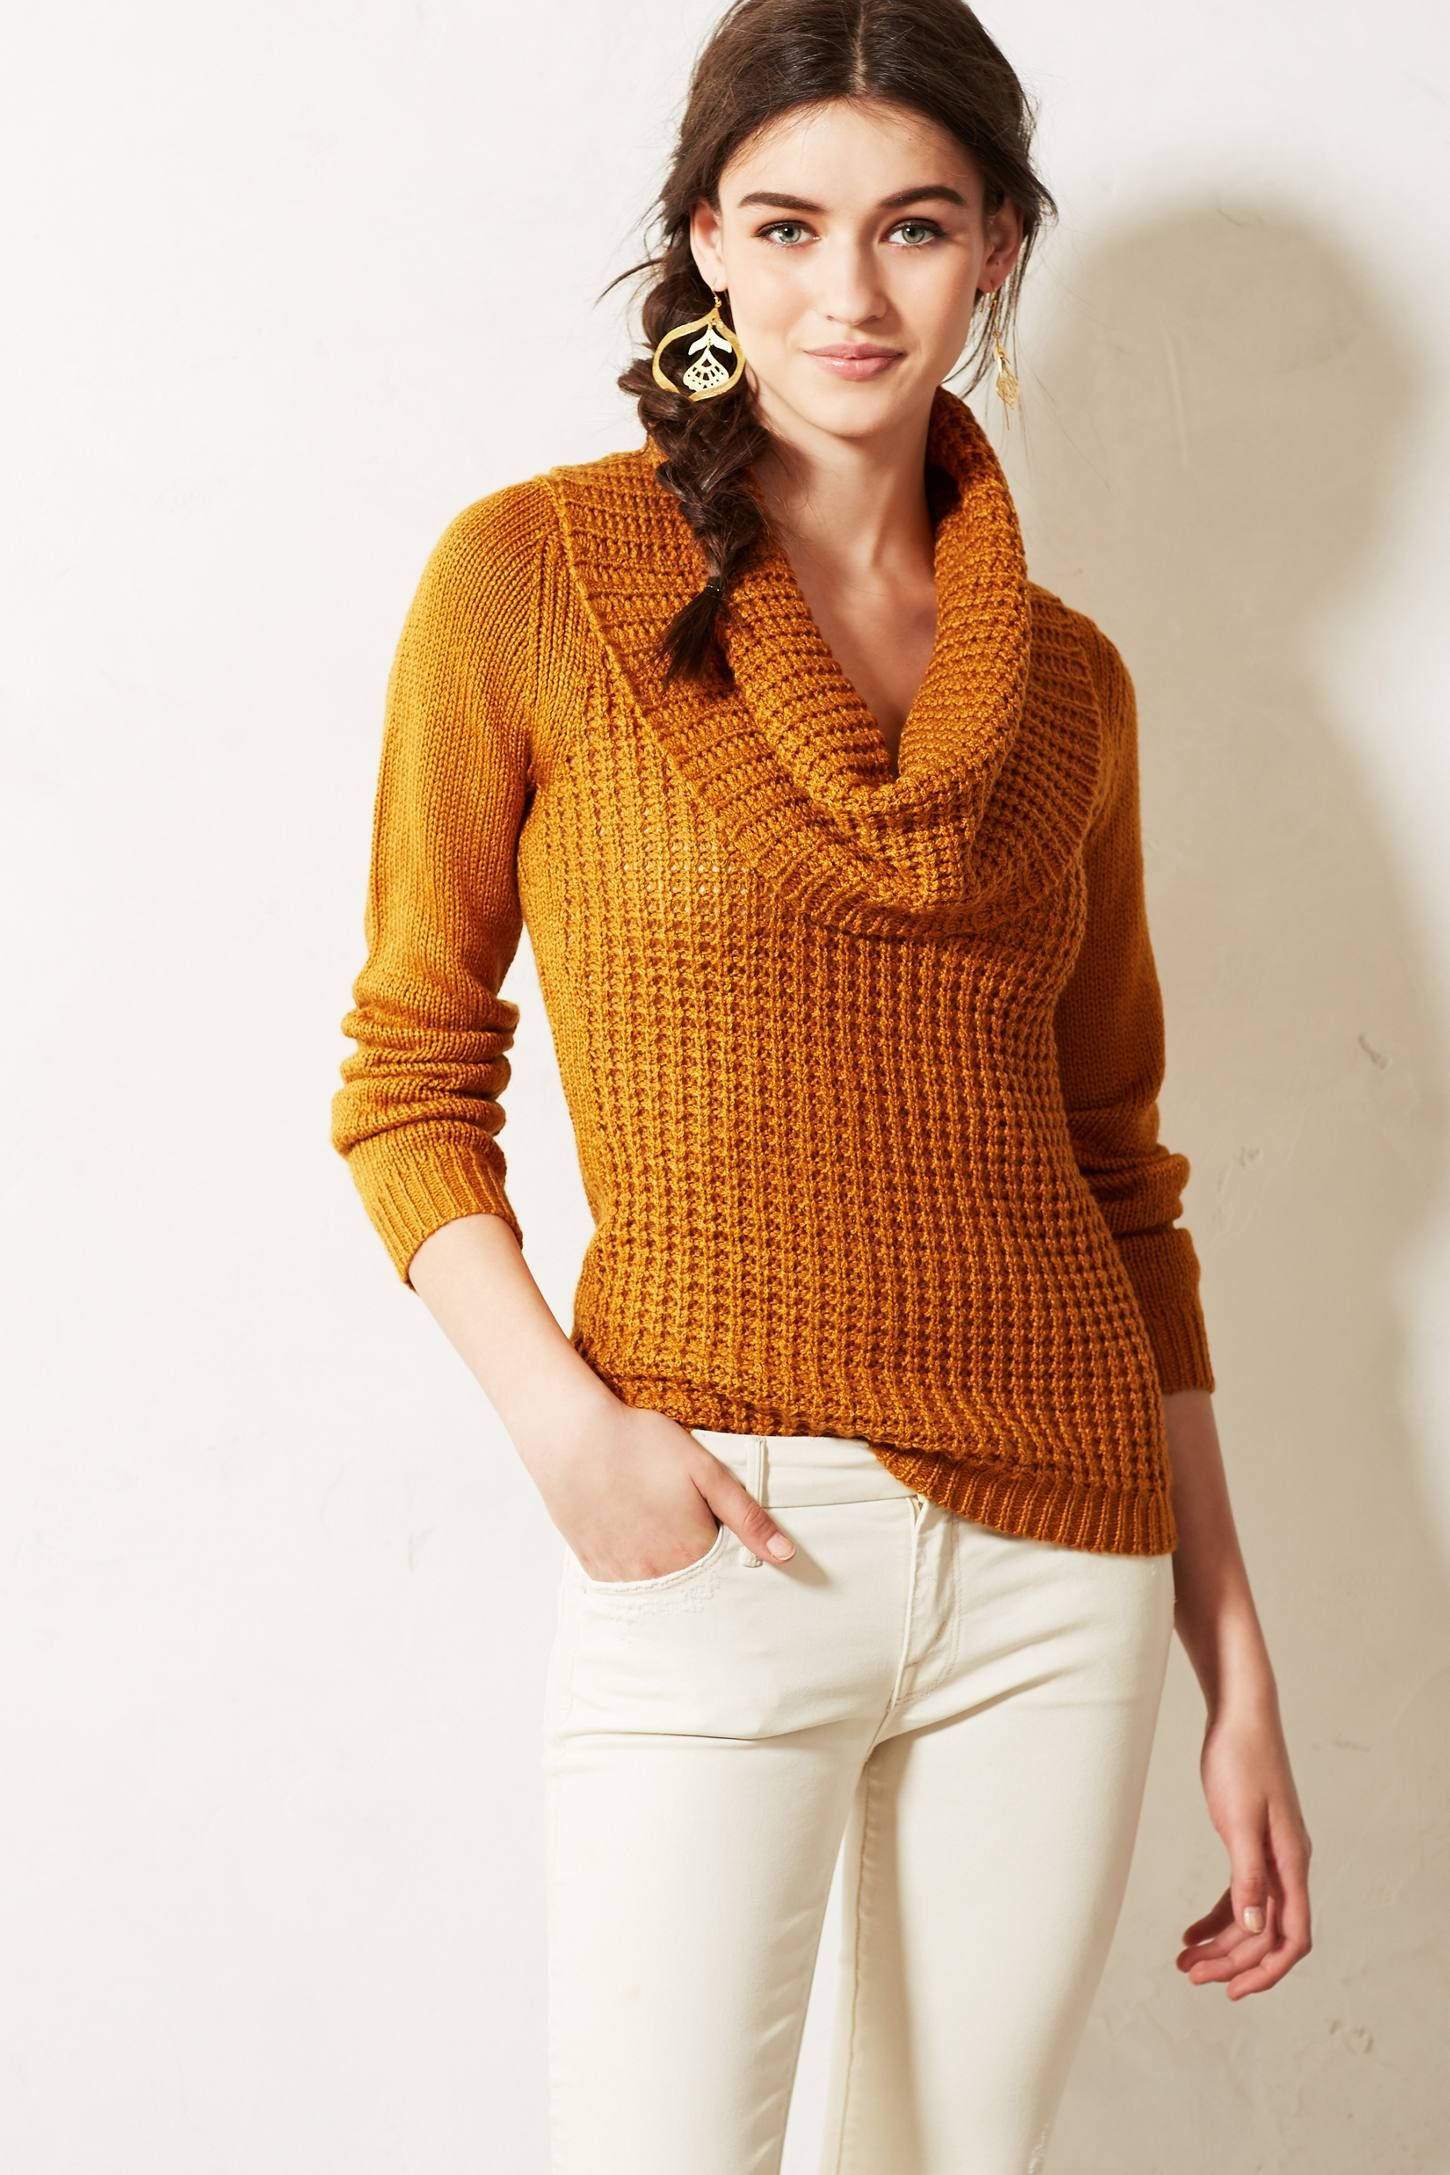 Waffled Cowlneck - anthropologie.com $98.00 | my style | Pinterest ...